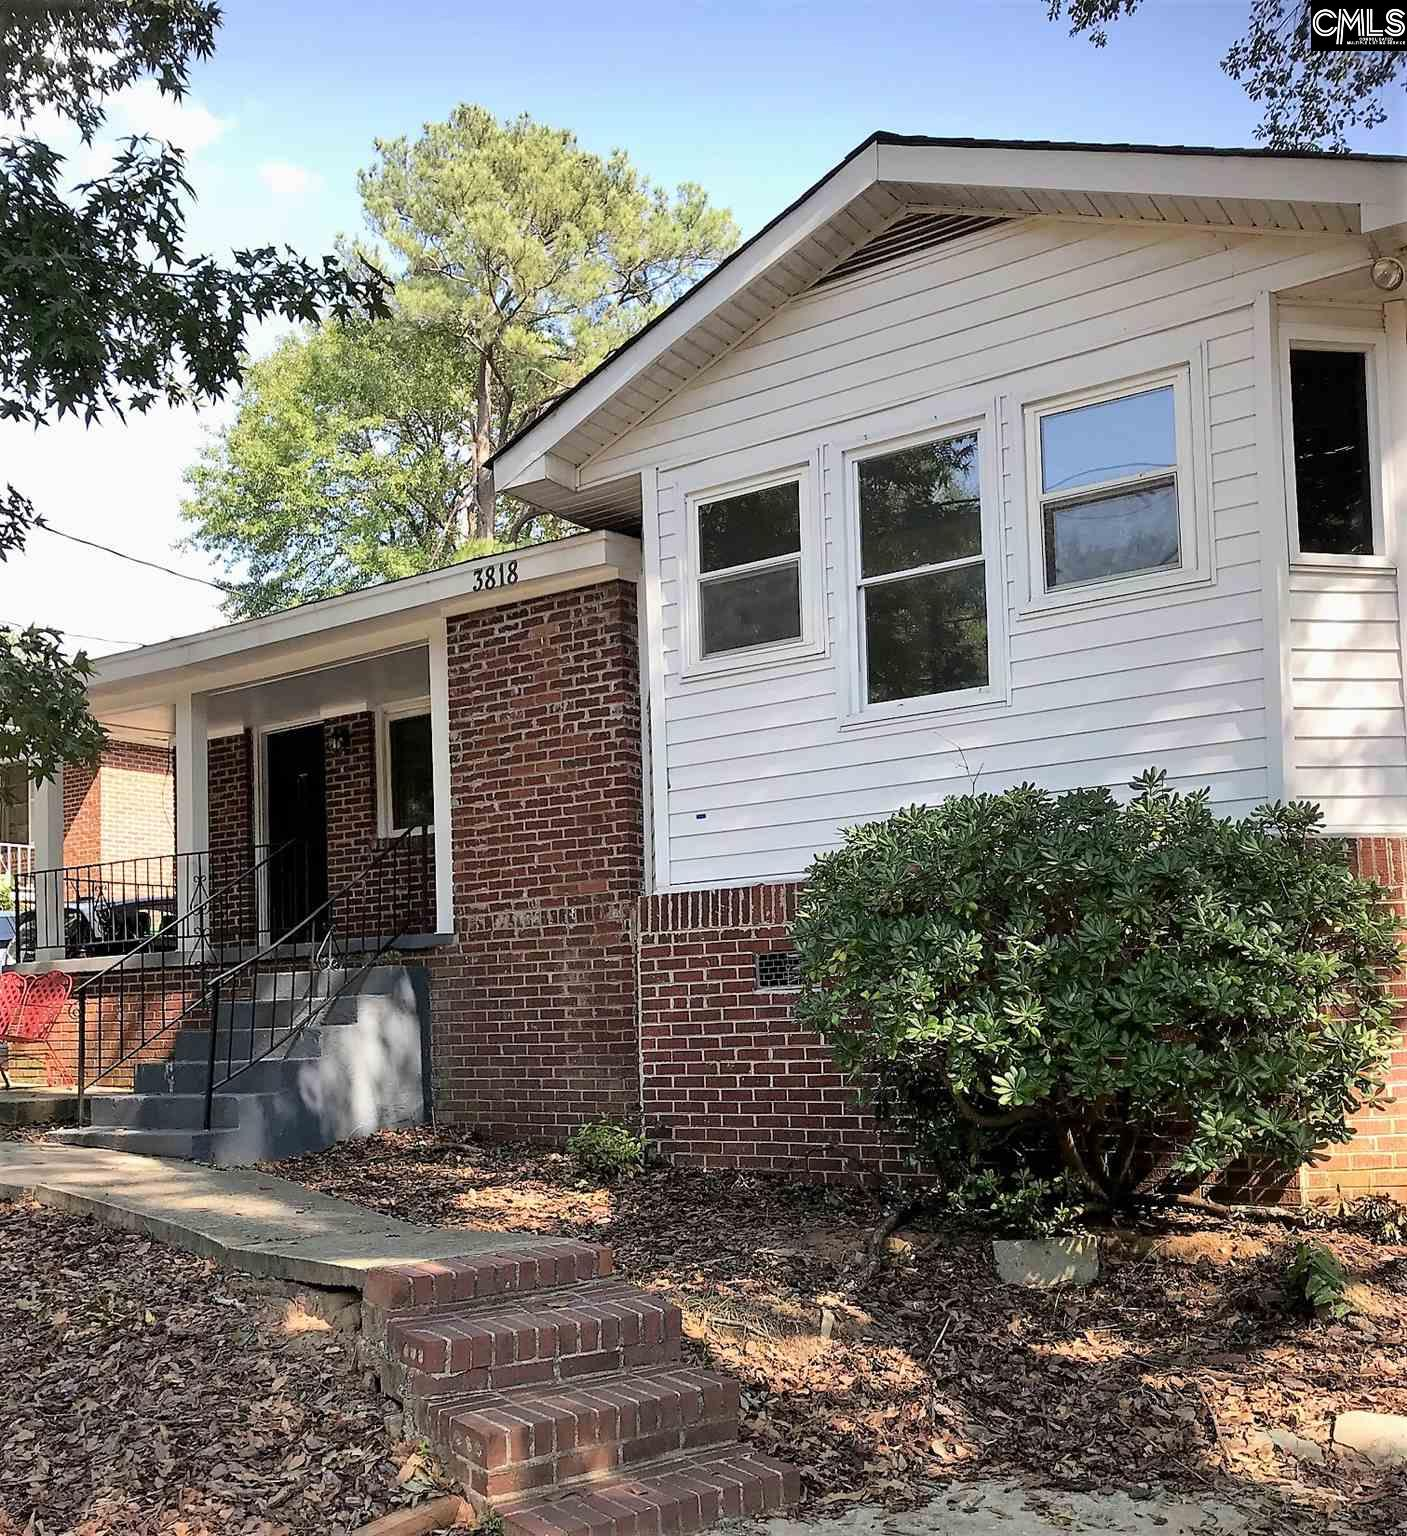 3818 Wellesley Columbia, SC 29203